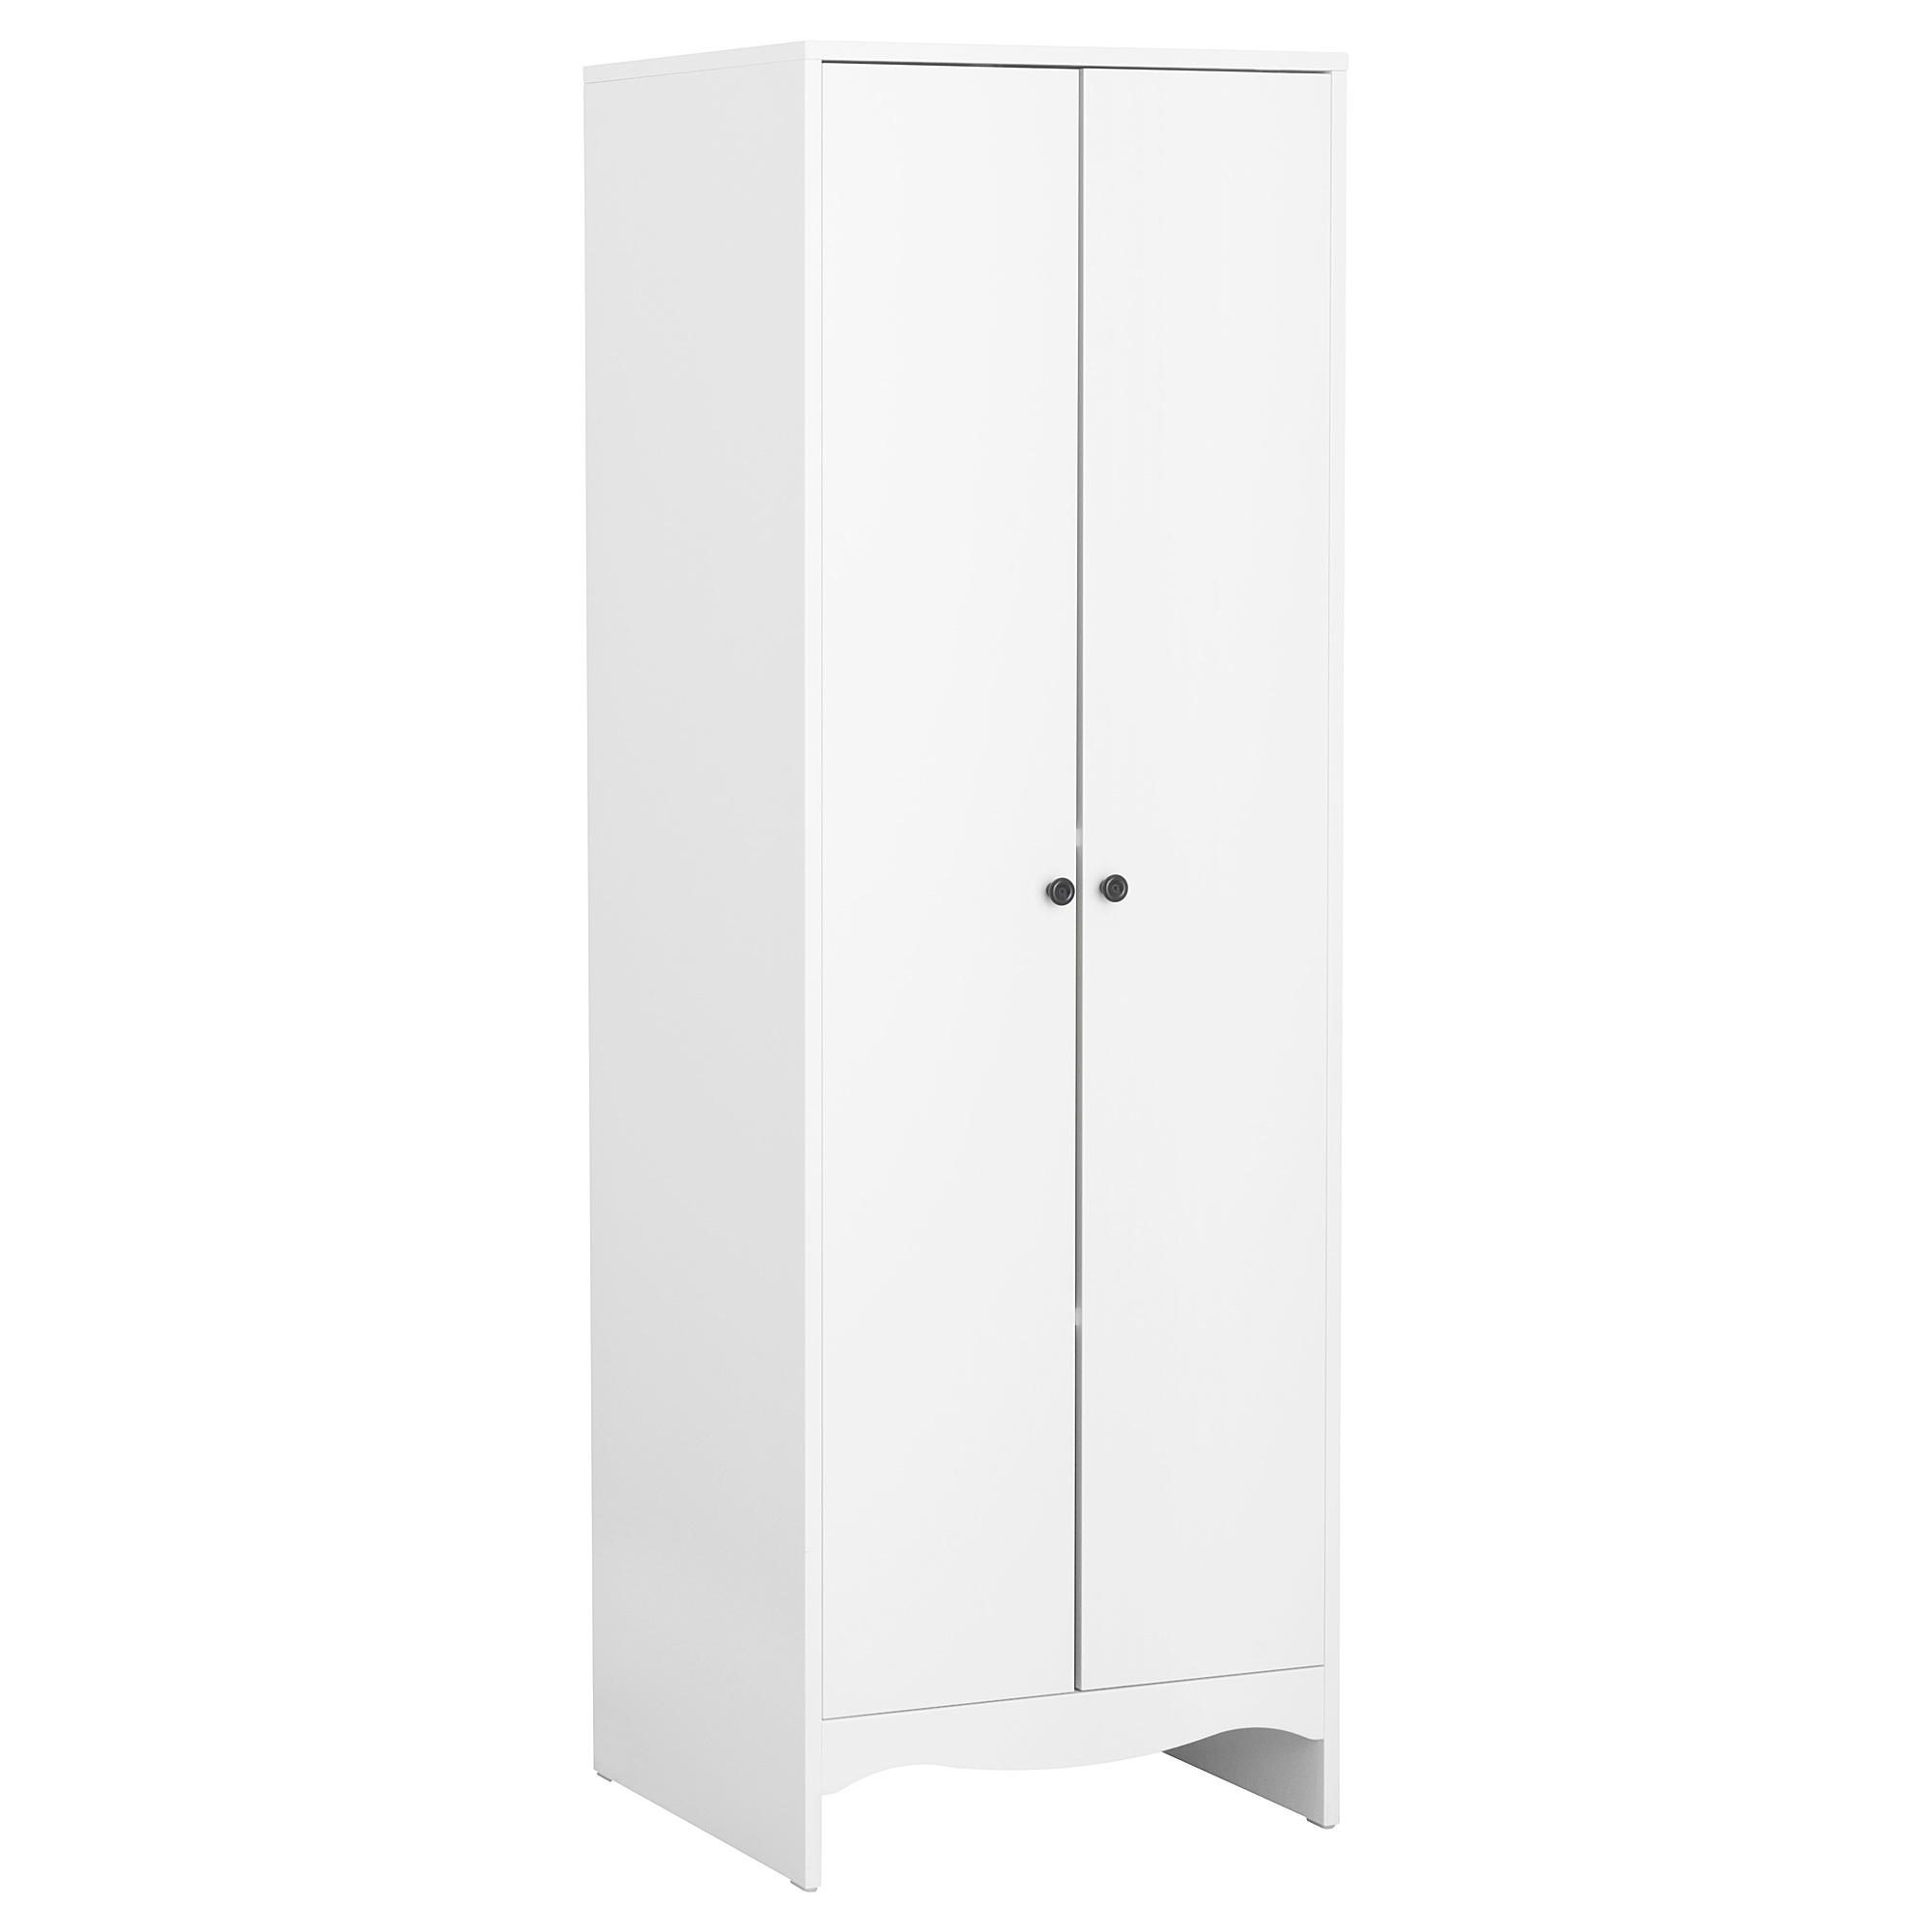 Children's Wardrobes – Nursery Wardrobes – Ikea Inside Recent Childrens Tallboy Wardrobes (View 5 of 15)